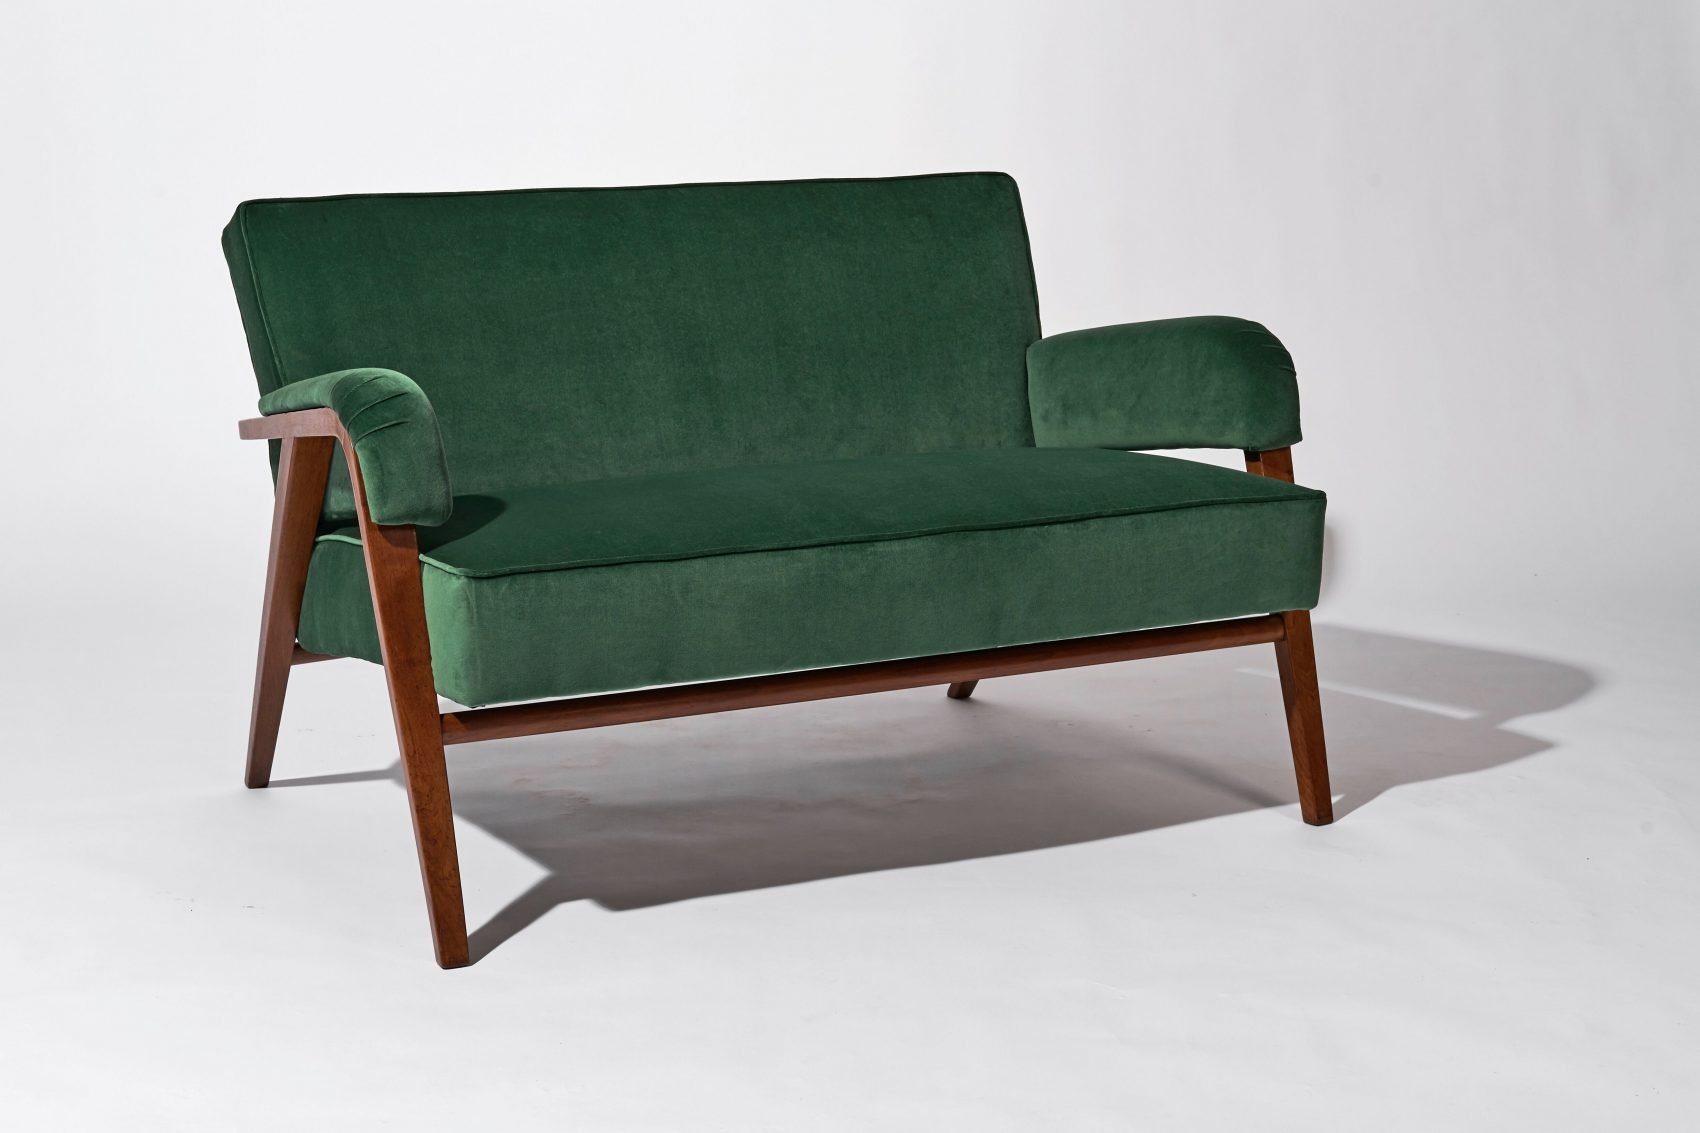 Franco Albini green loveseat designed for Casa C. Milan at Casati Gallery